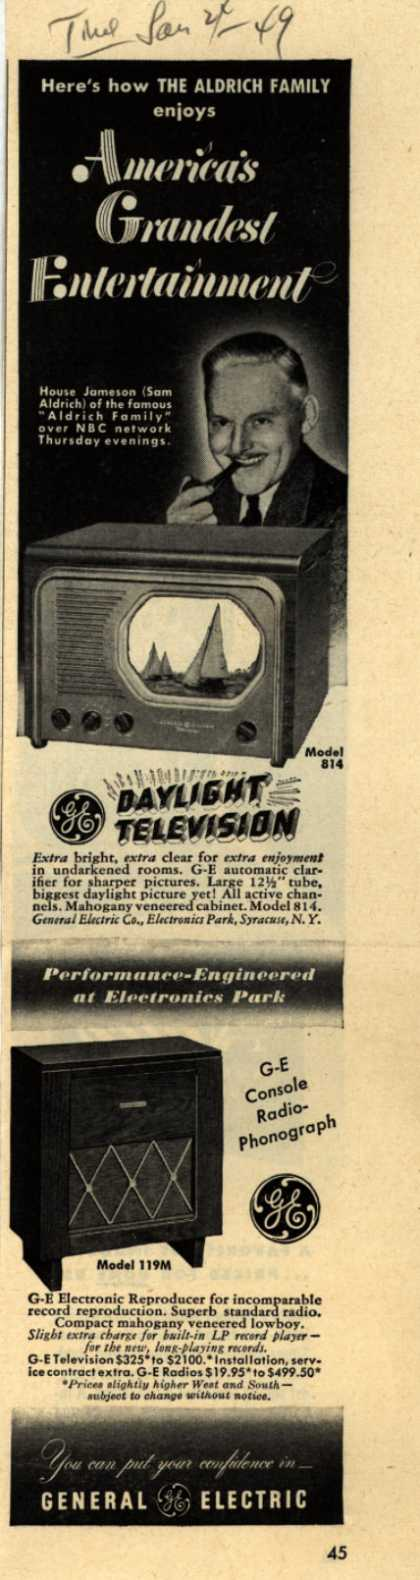 General Electric Company's Daylight Television – Here's how the Aldrich Family enjoys America's Grandest Entertainment (1949)